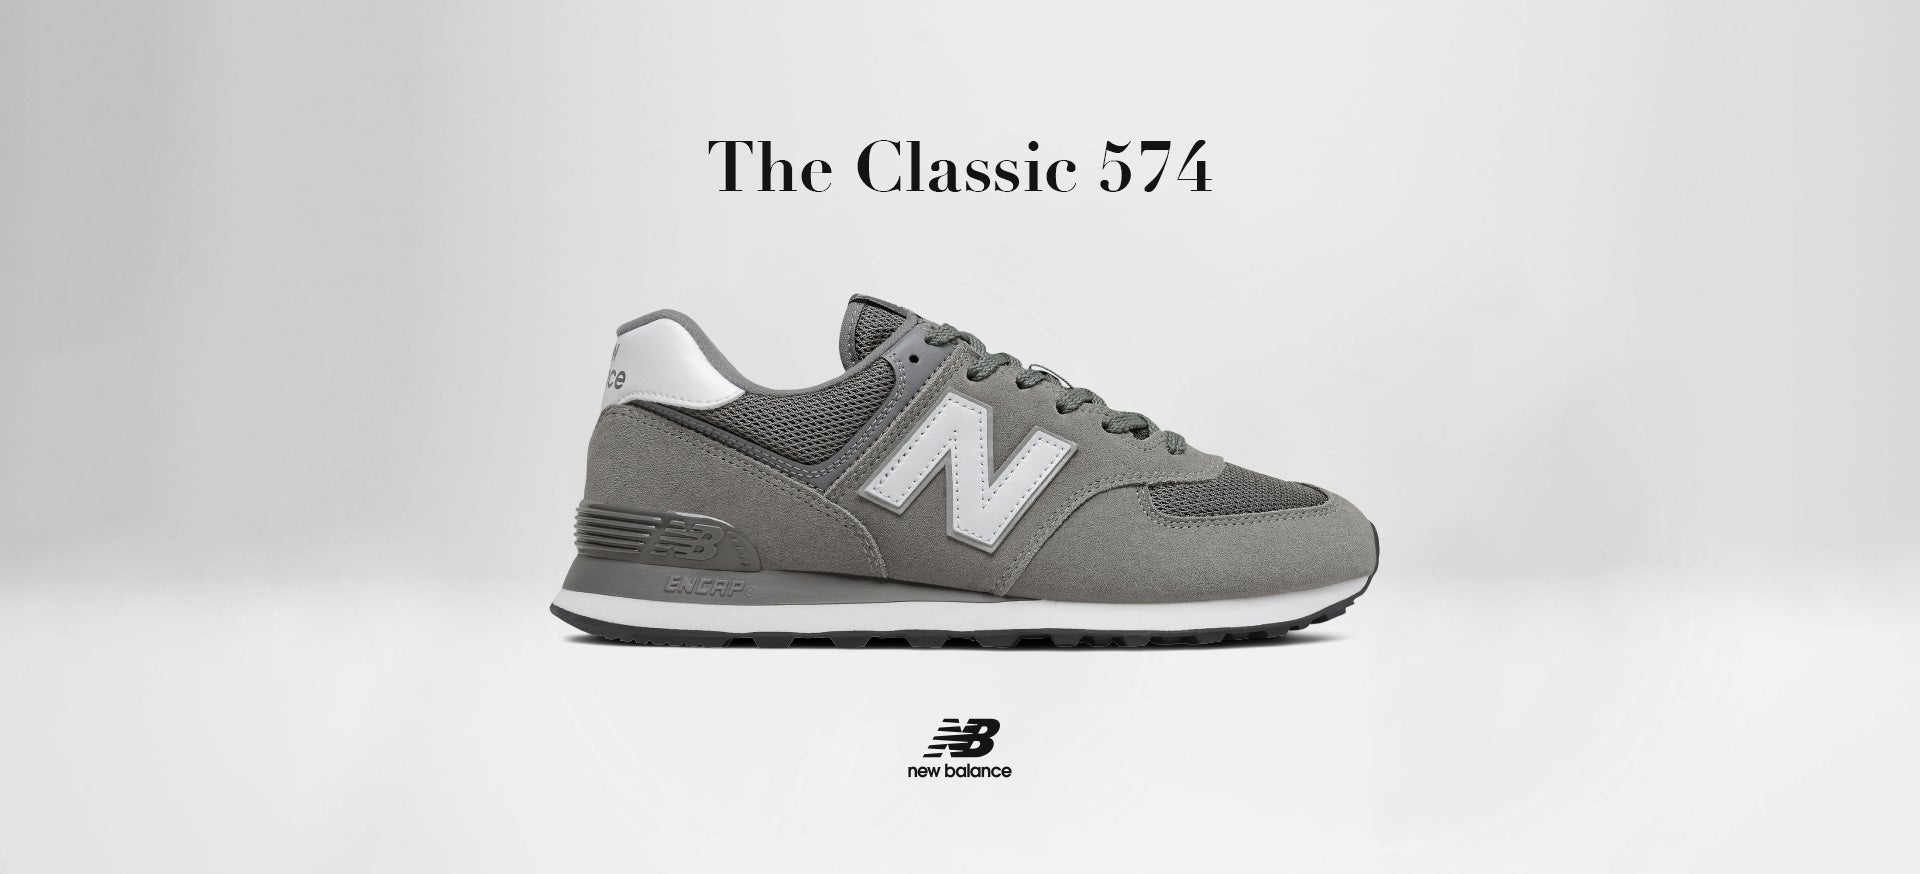 574, The most New Balance shoe ever.